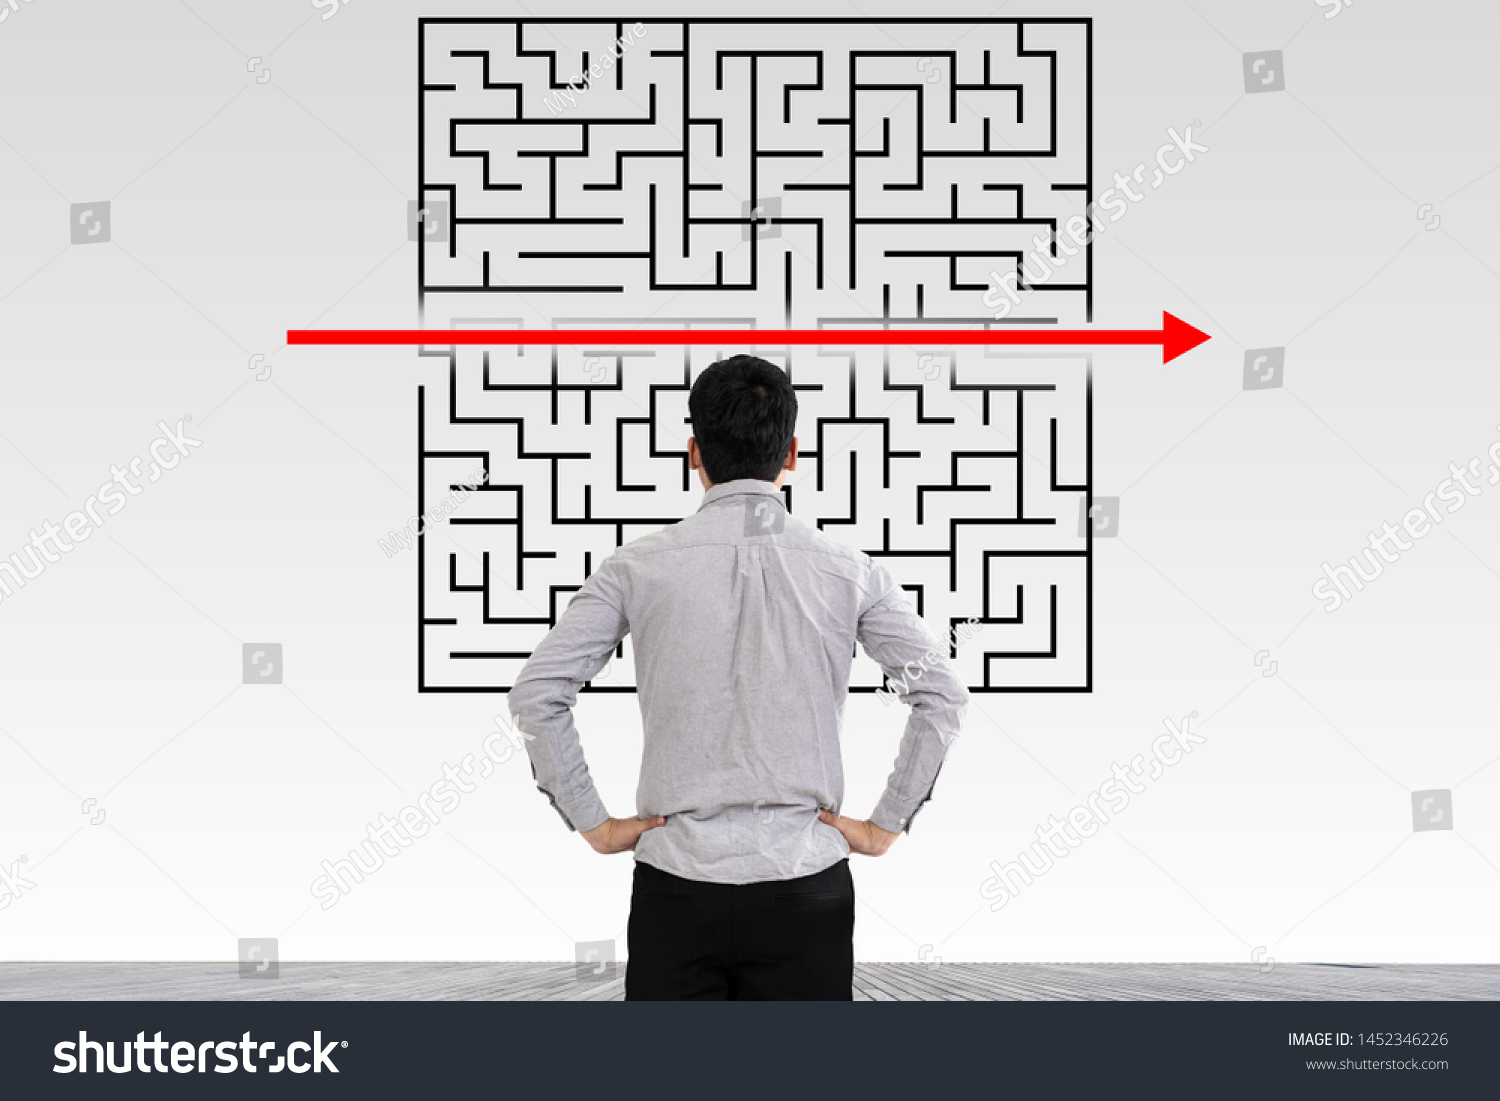 stock-photo-businessman-in-doubt-looking-to-a-maze-and-searching-the-way-out-1452346226